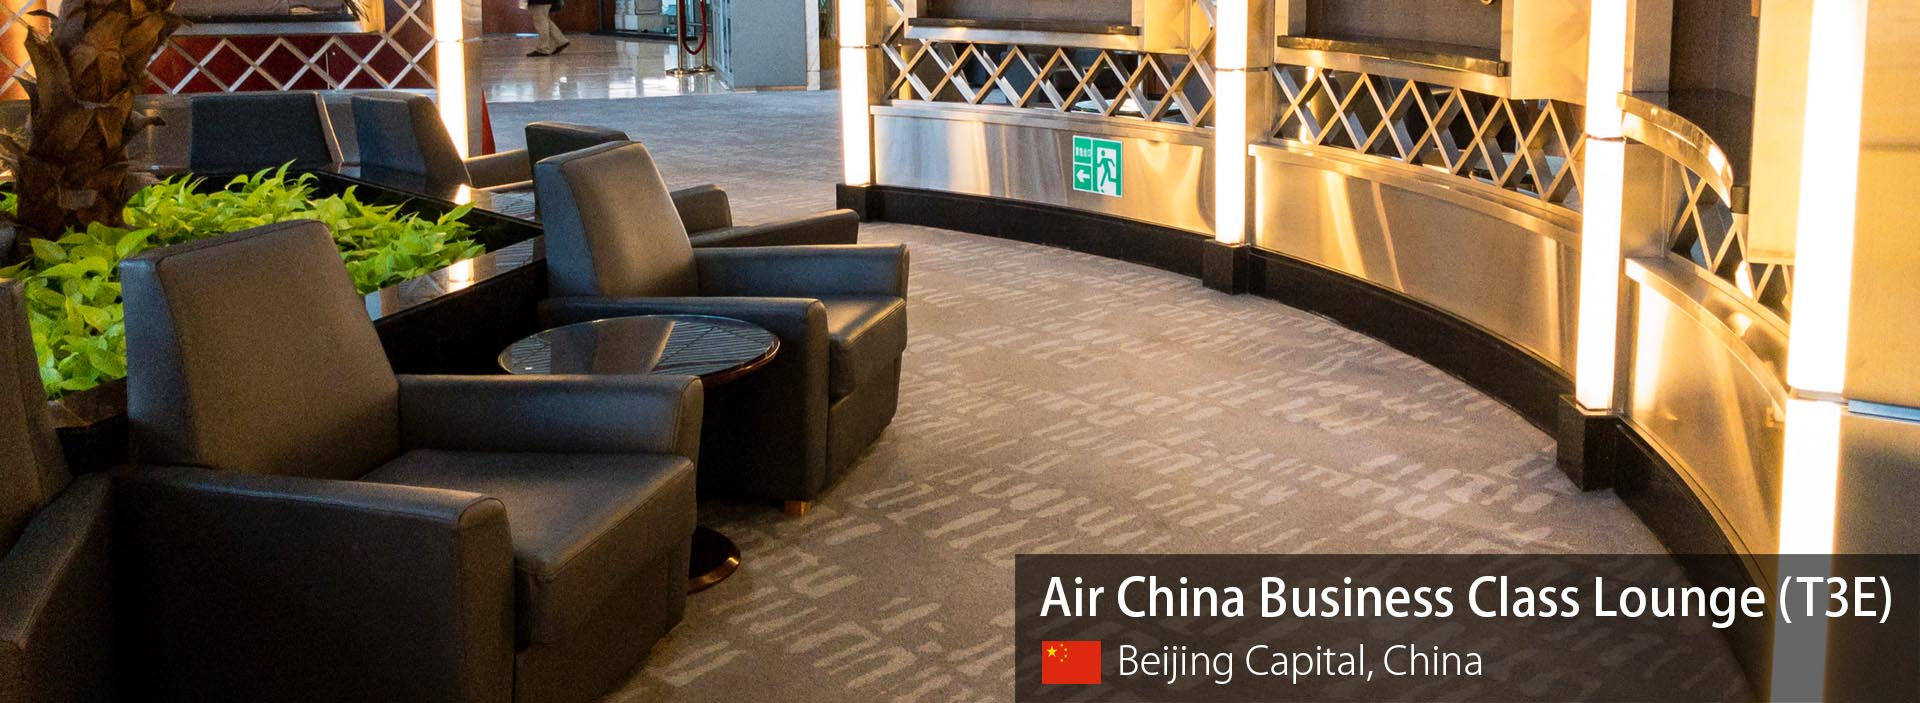 Lounge Review: Air China Business Class Lounge (Terminal 3E) at Beijing Capital